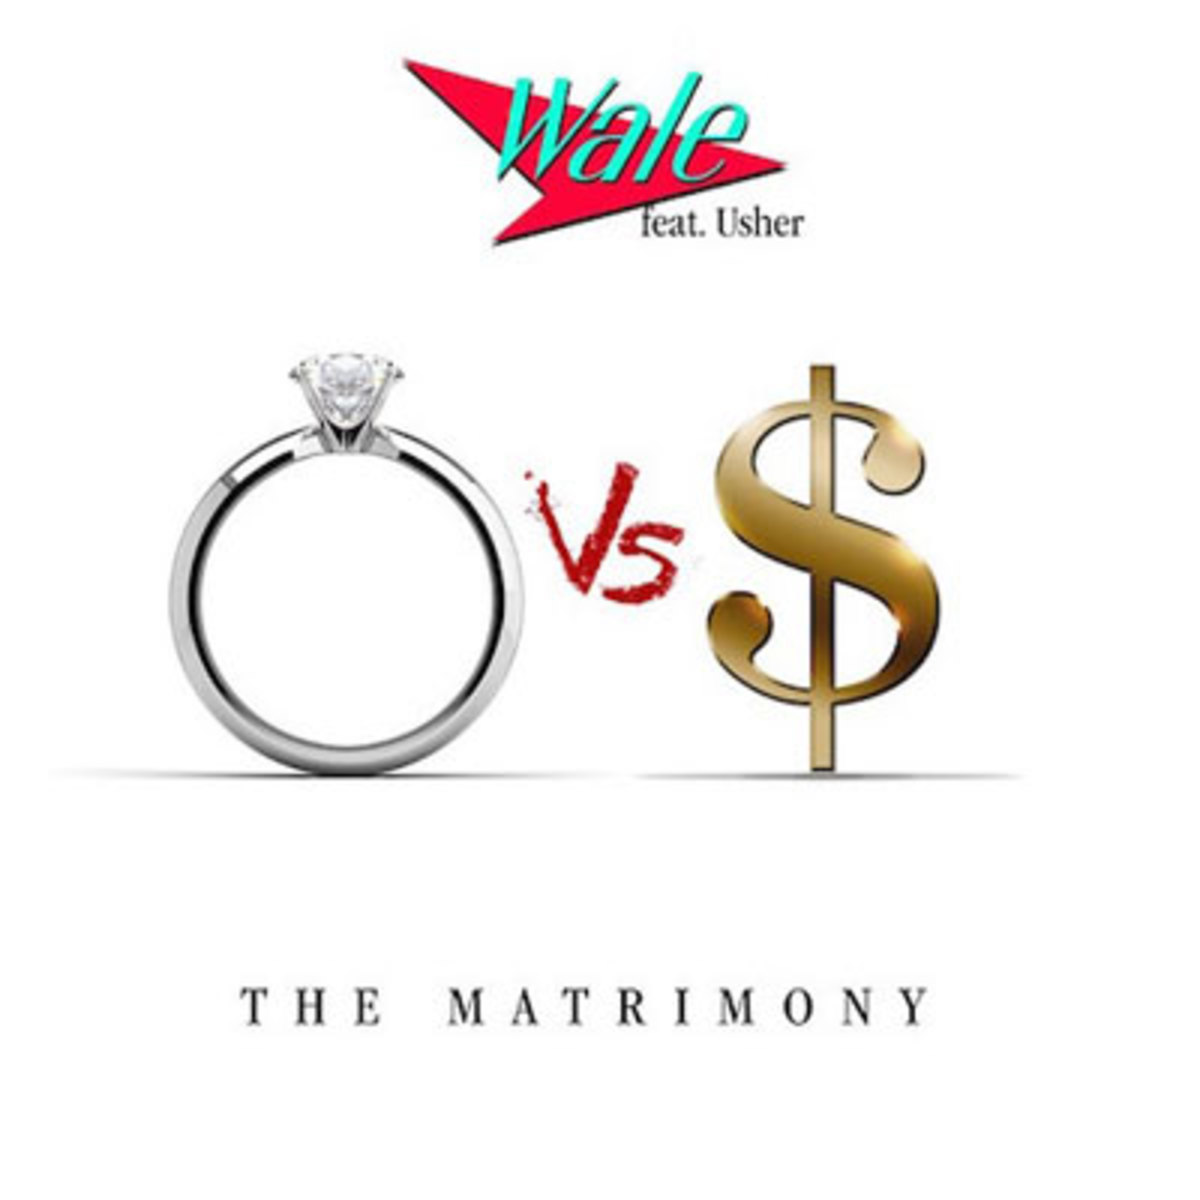 wale-the-matrimony.jpg